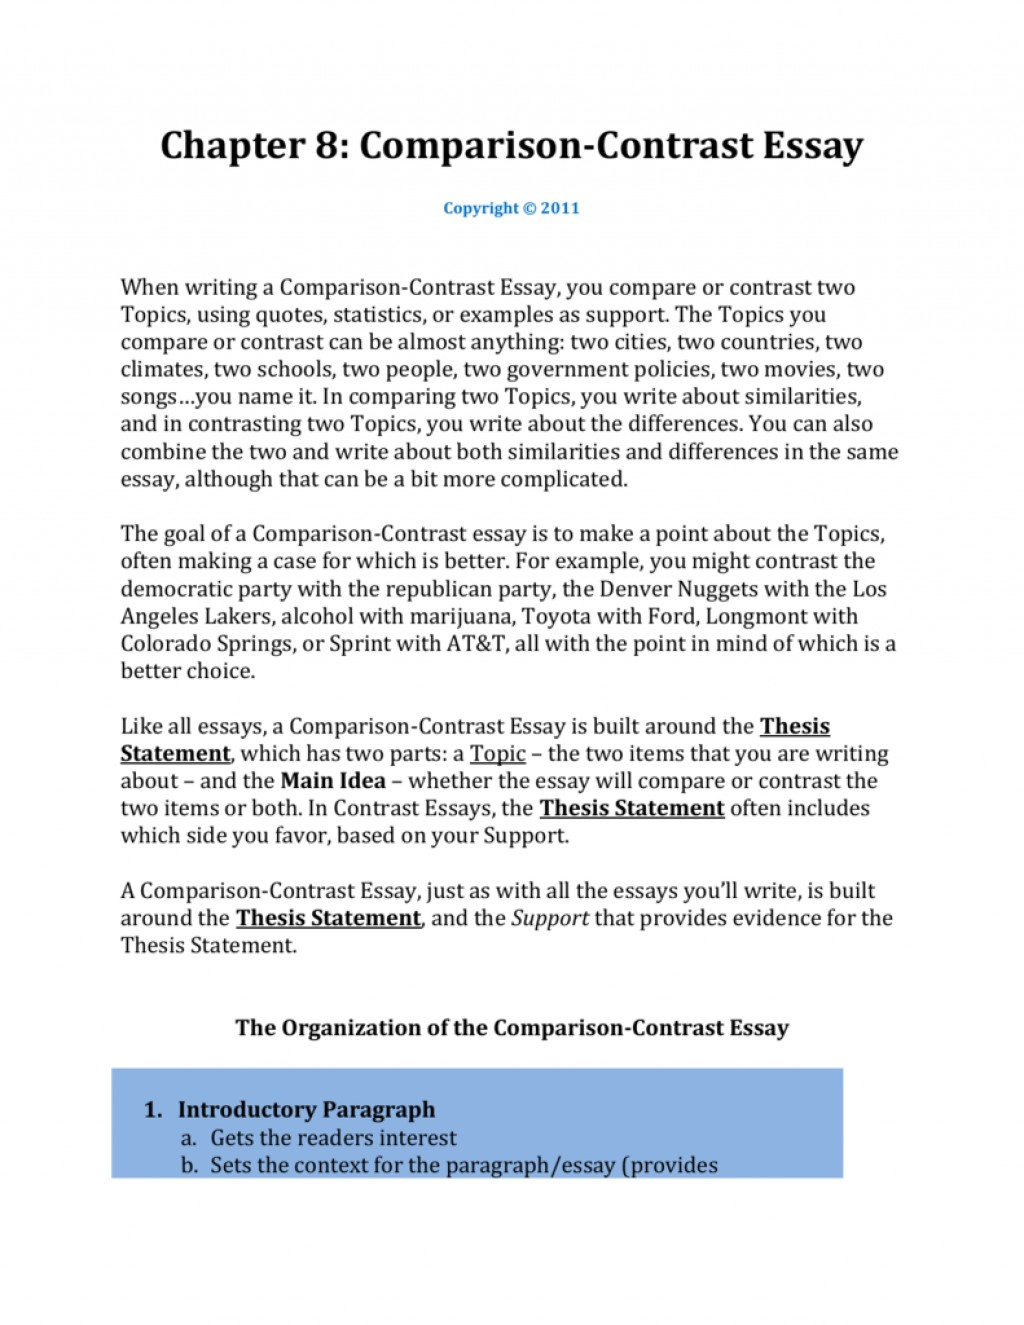 013 Compare Contrast Essays 007207405 1 Essay Best Topics Technology Comparison Outline And Format Large